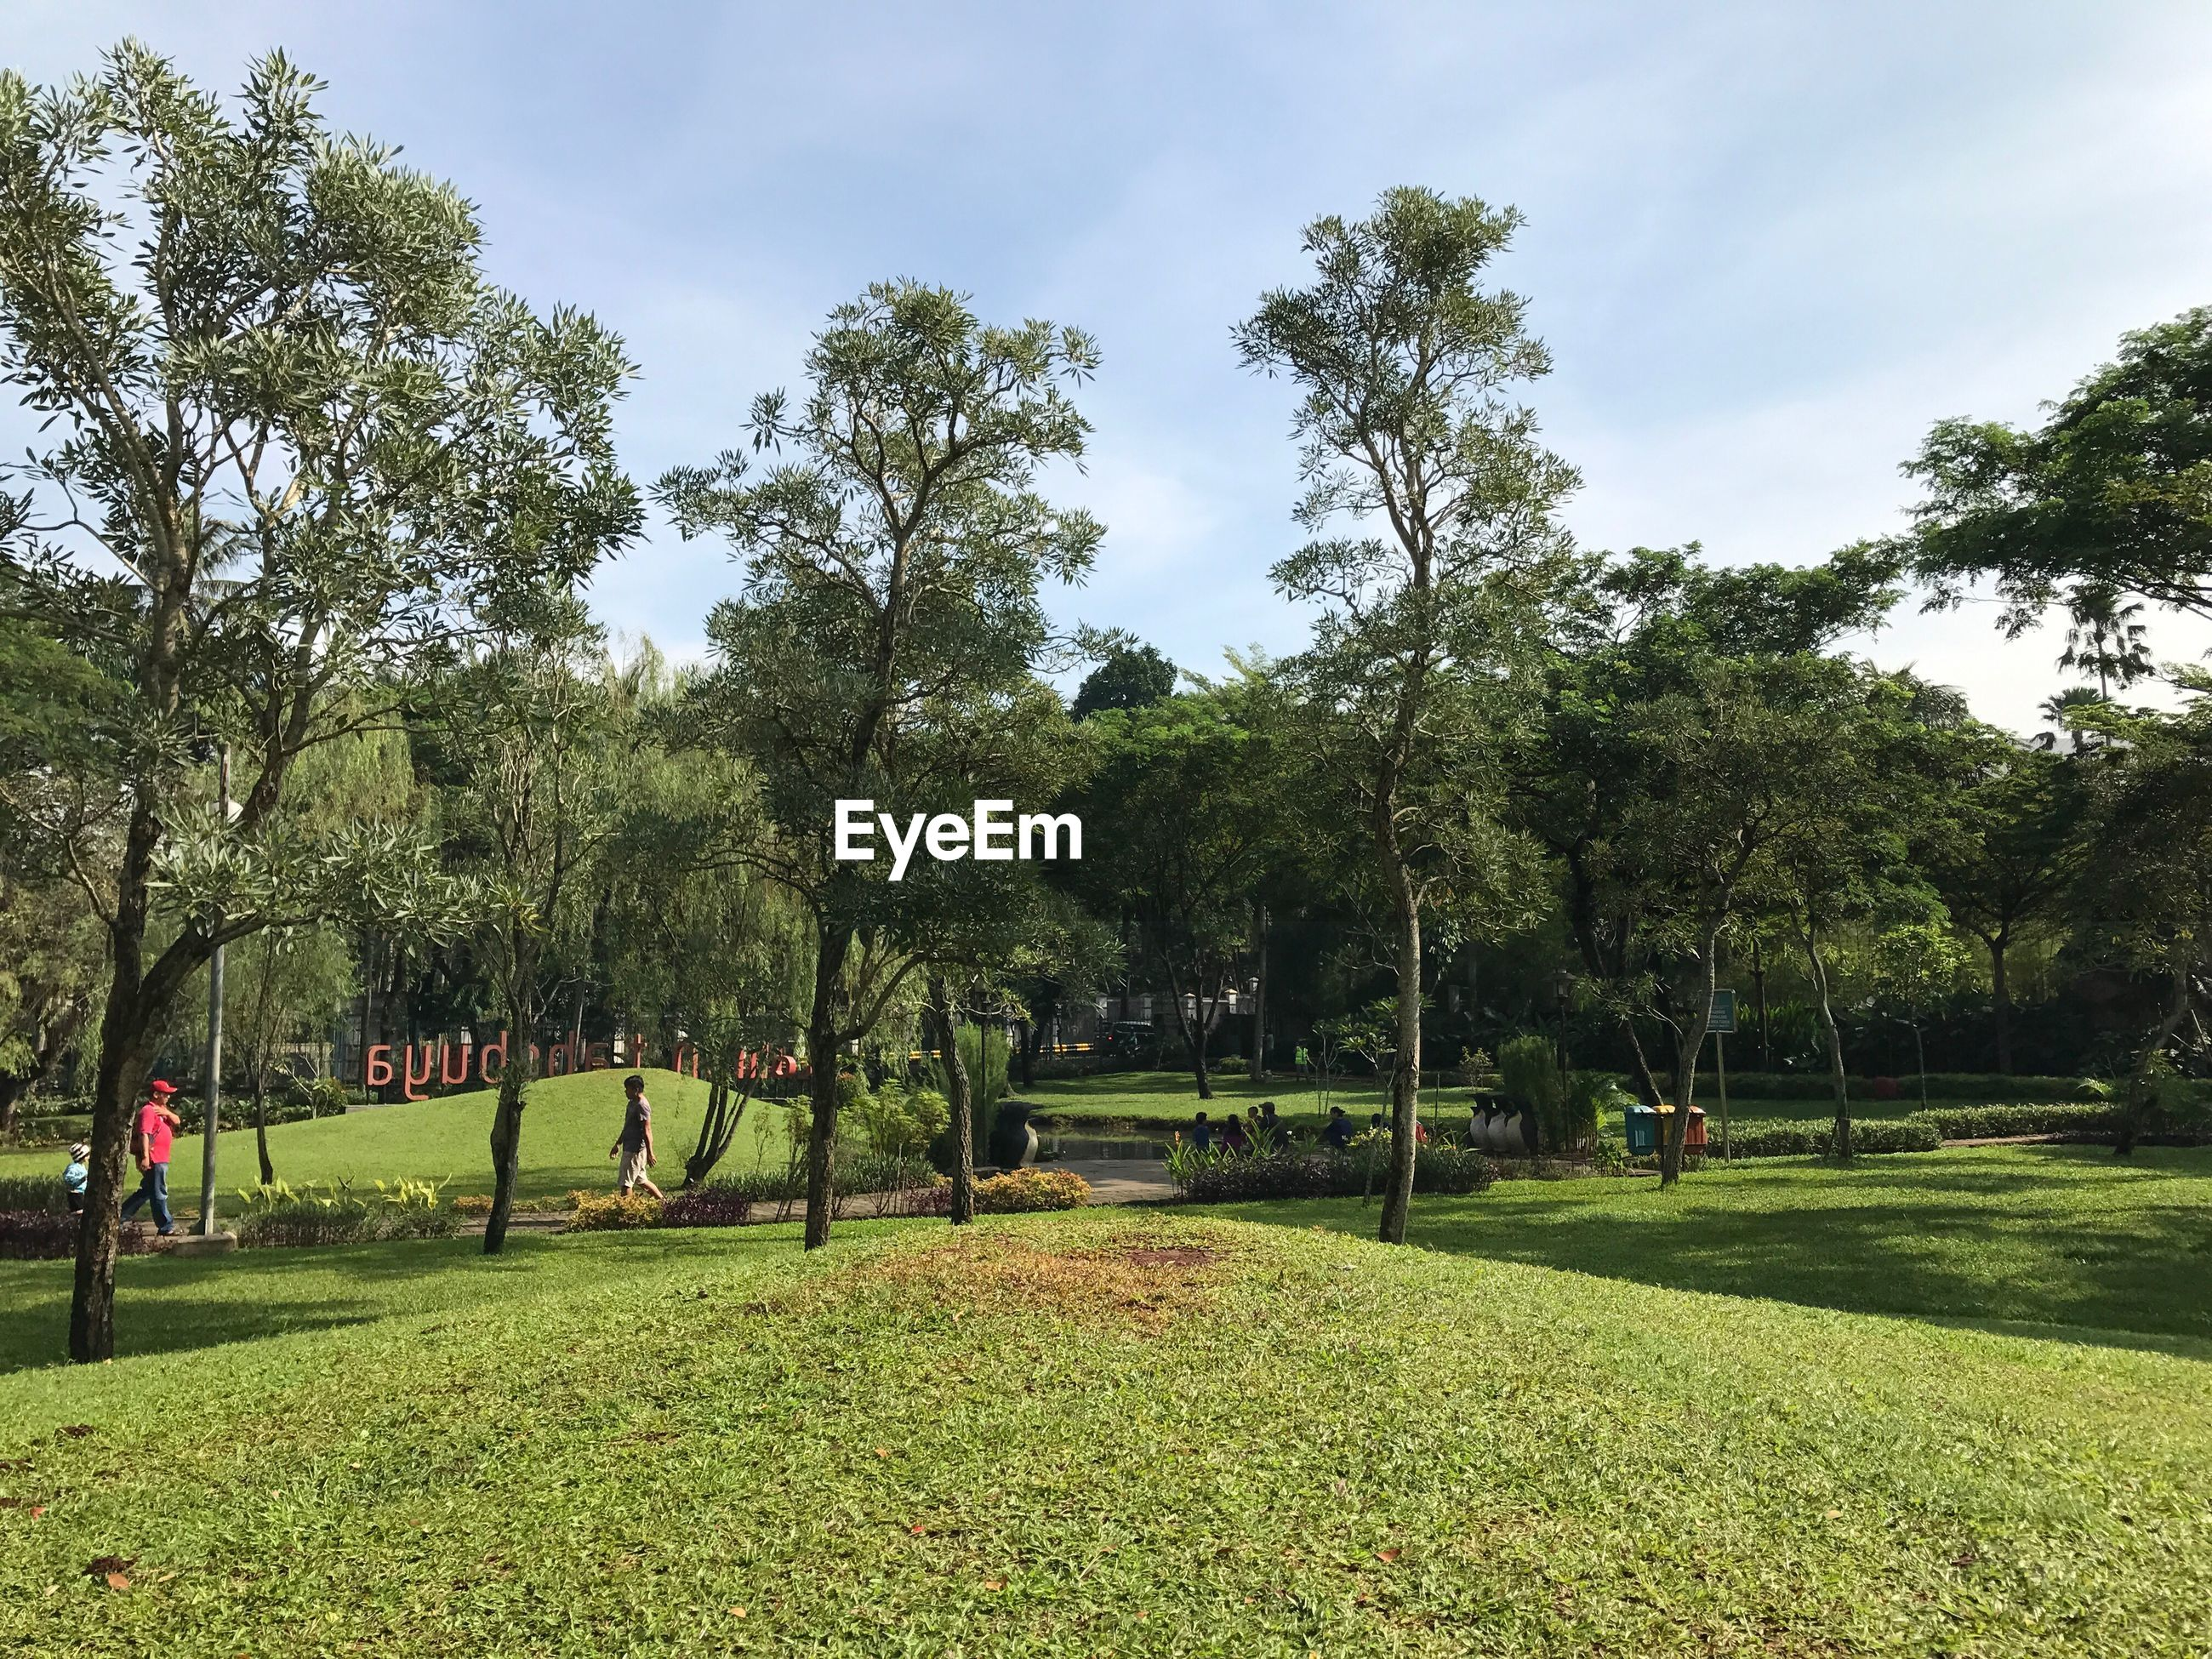 tree, growth, park - man made space, sky, green color, nature, grass, day, outdoors, park, no people, beauty in nature